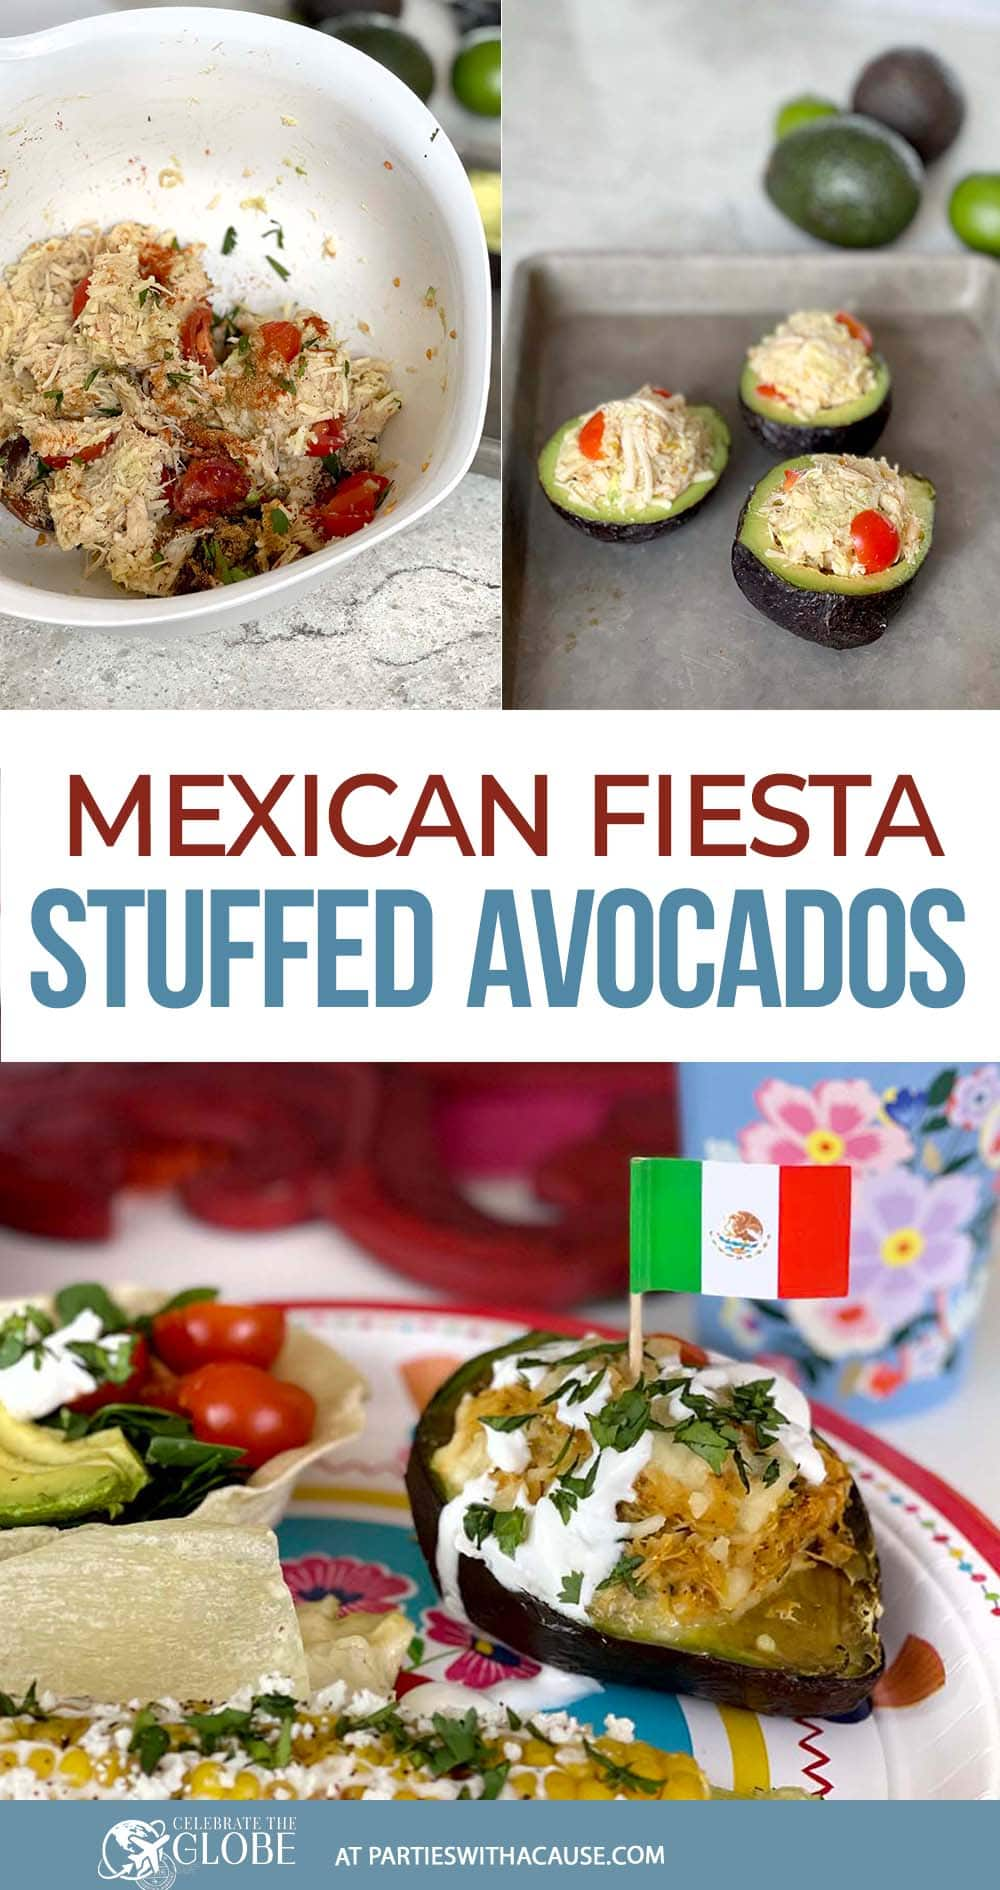 Mexican fiesta stuffed baked avocados by Salt Lake Party Stylist